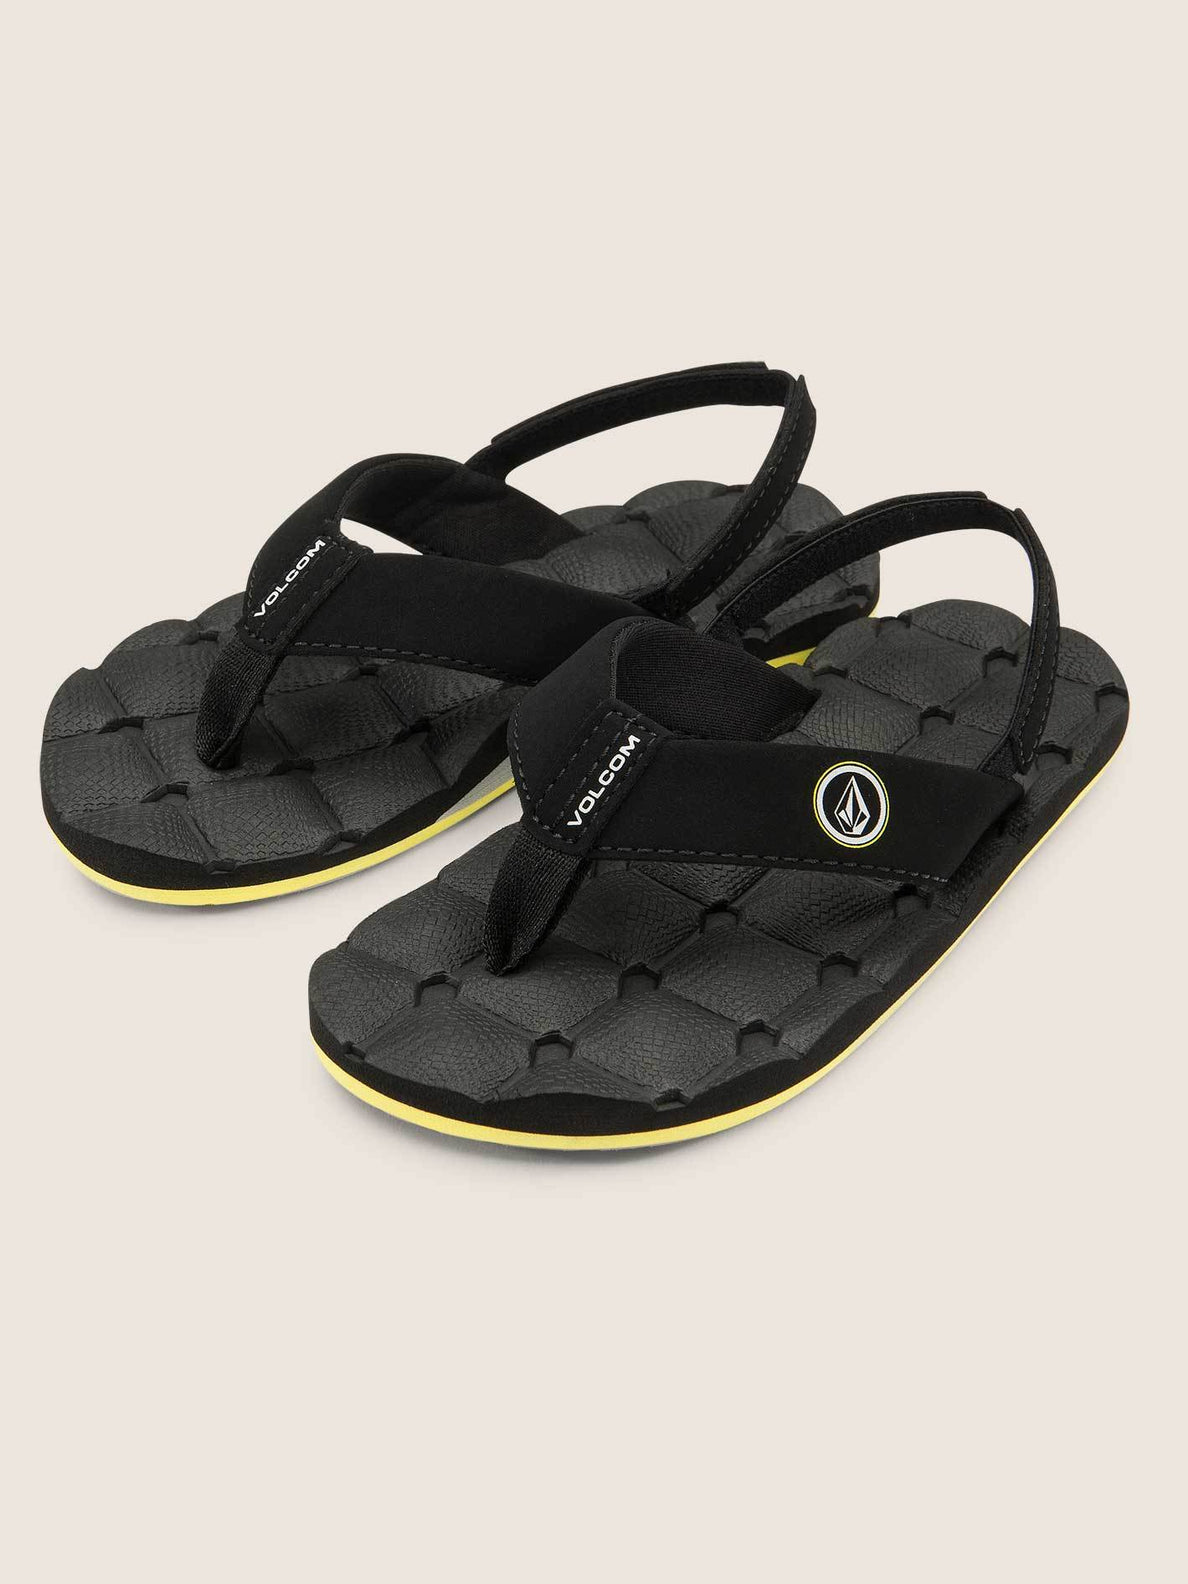 Little Boys Recliner Sandals In Sulfur Black, Front View